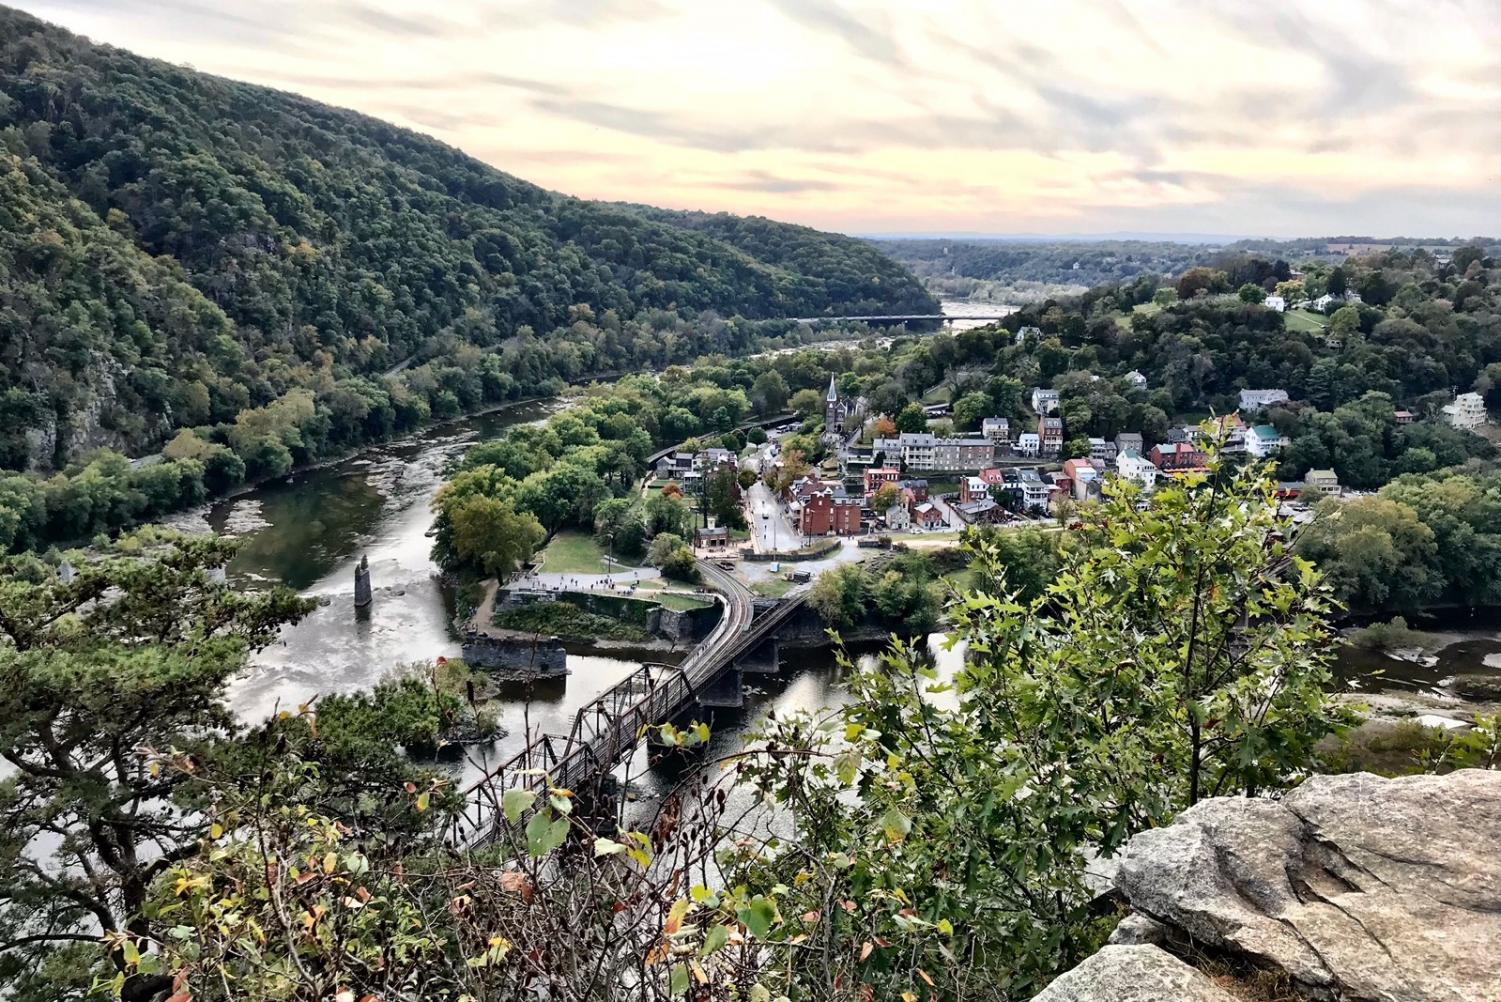 Harper's Ferry is a small historical town wedged between Harper's Ferry National Park, the Potomac River and the Shenandoah River. The town includes sites like the Point—where the two rivers meet—the Civil War Museum and John Brown's Fort, a key site in an 1859 abolitionist raid.